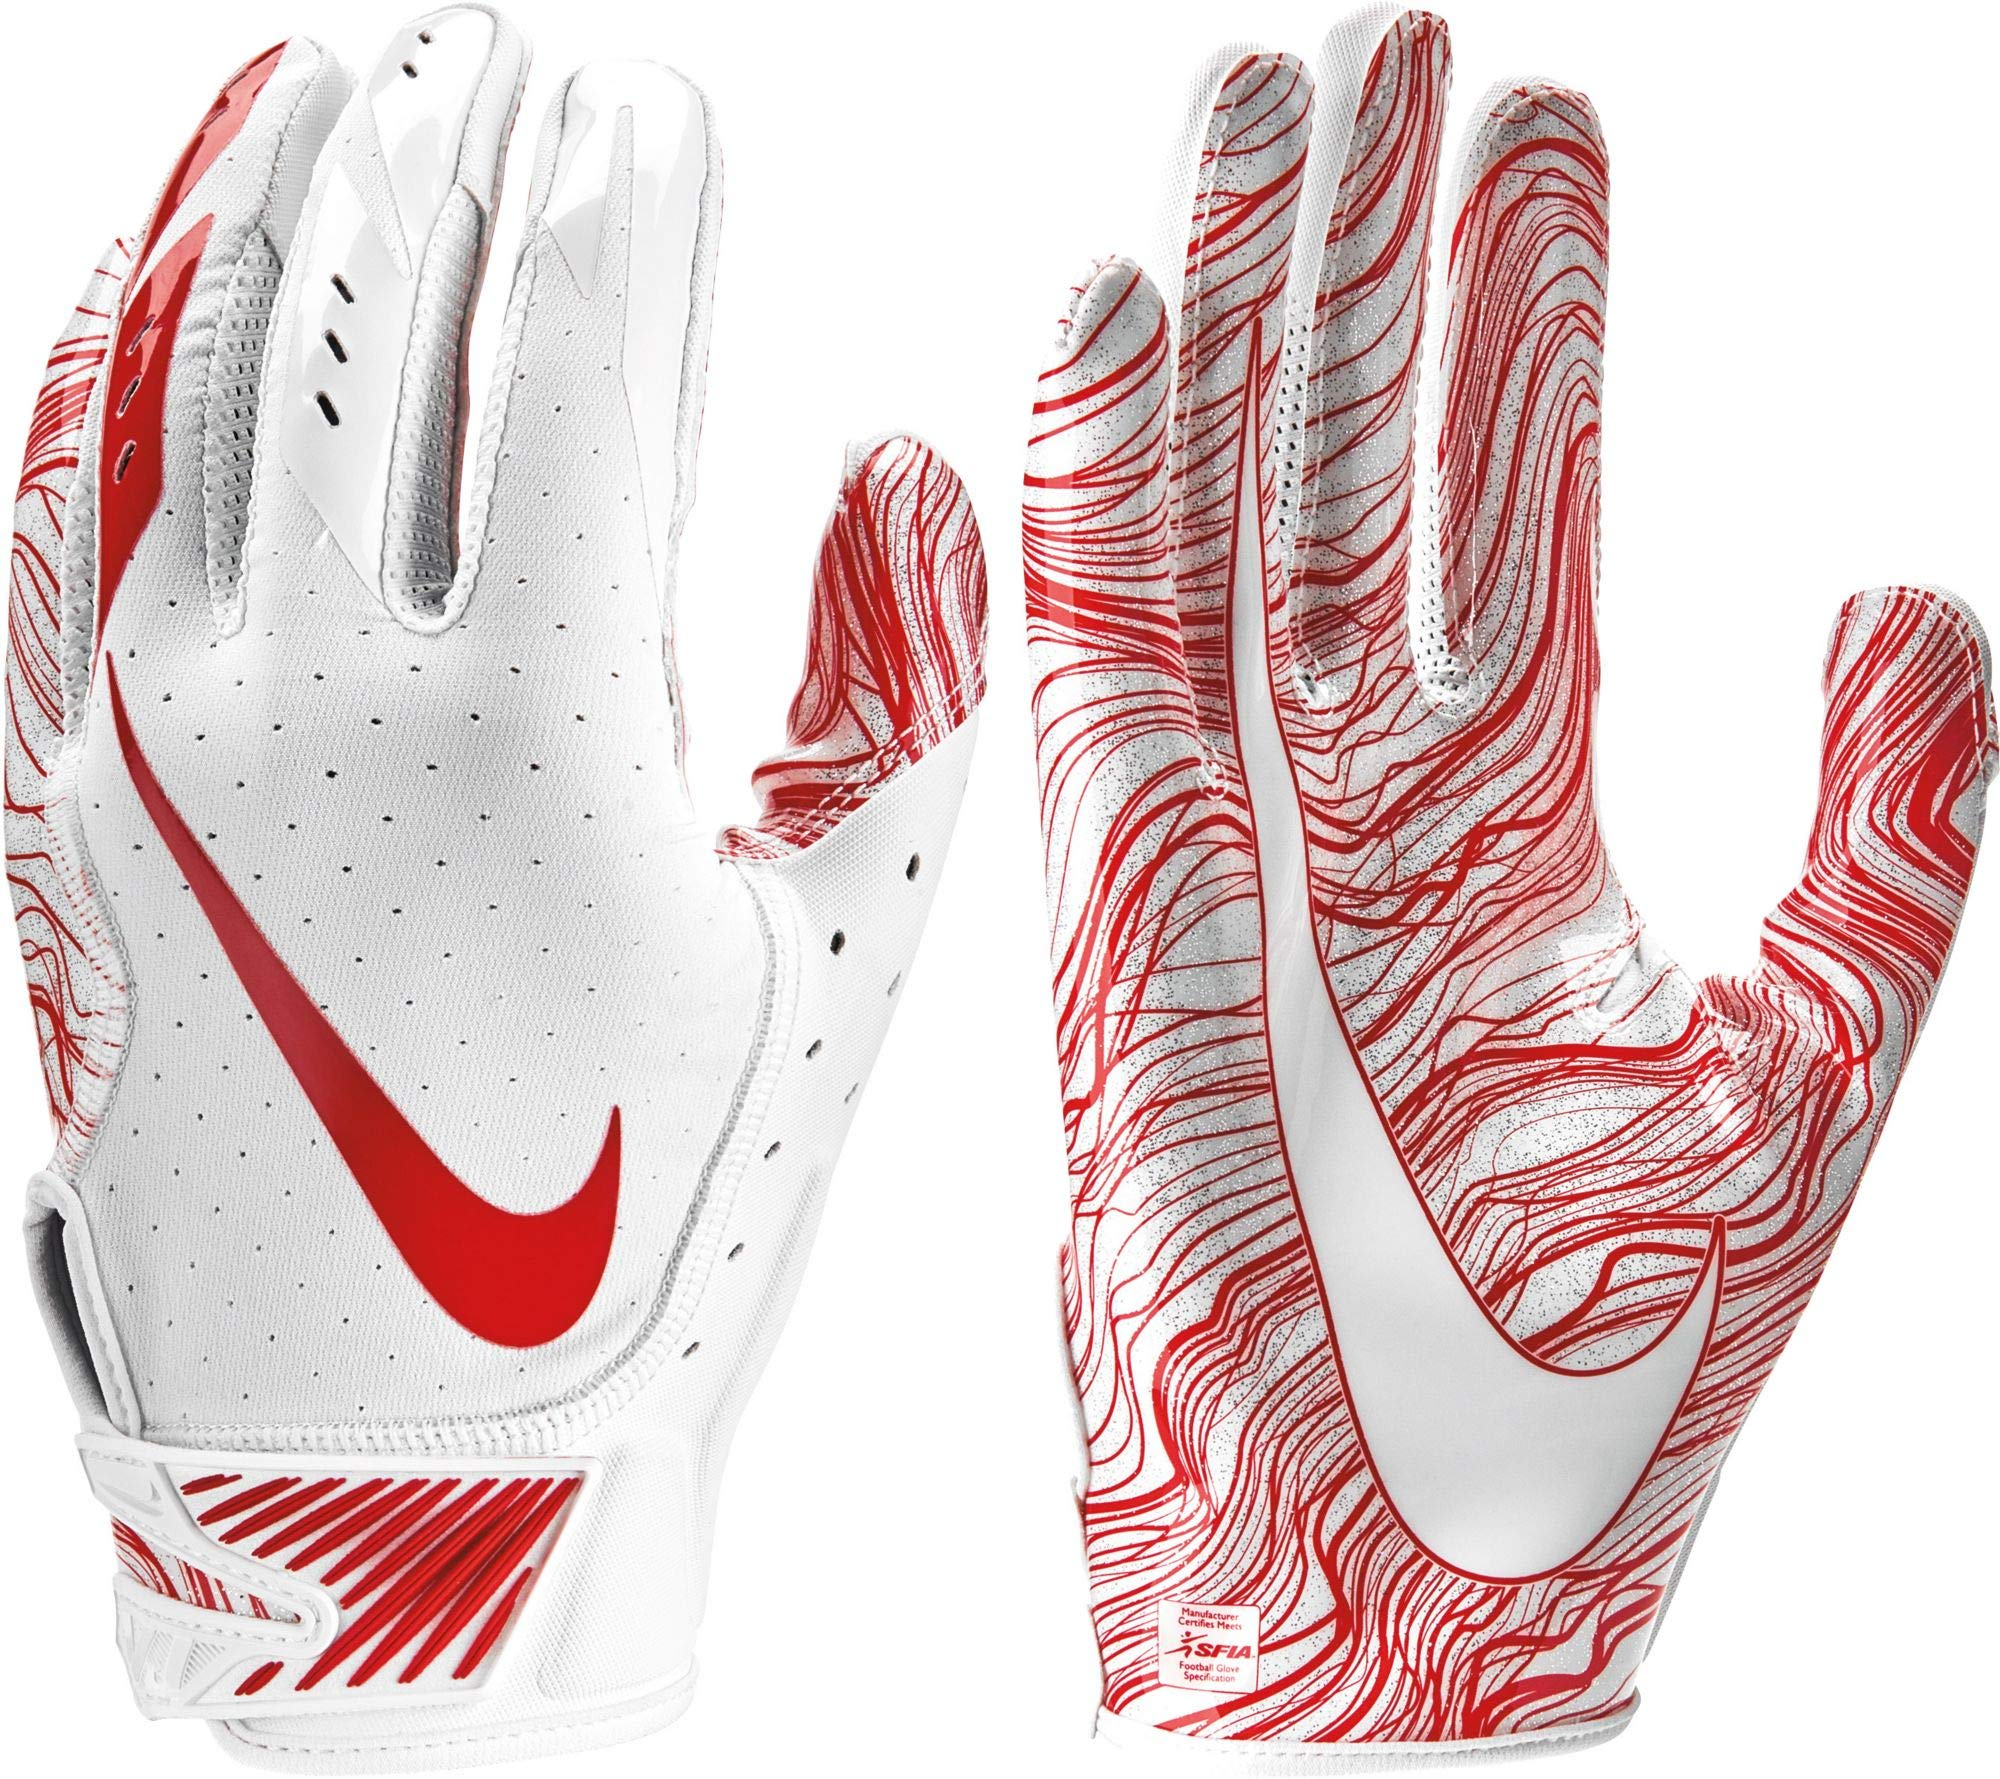 Nike Adult Vapor Jet 5.0 Receiver Gloves 2018 (White/University Red, Small)